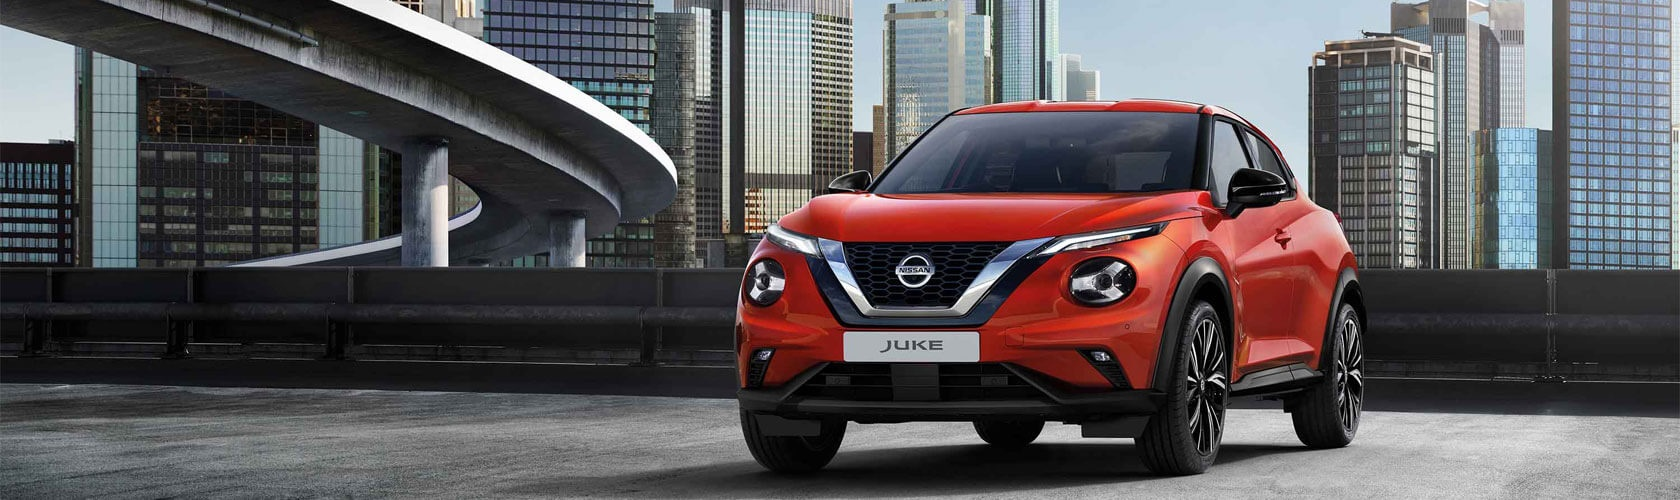 The All New Nissan Juke - Has Arrived